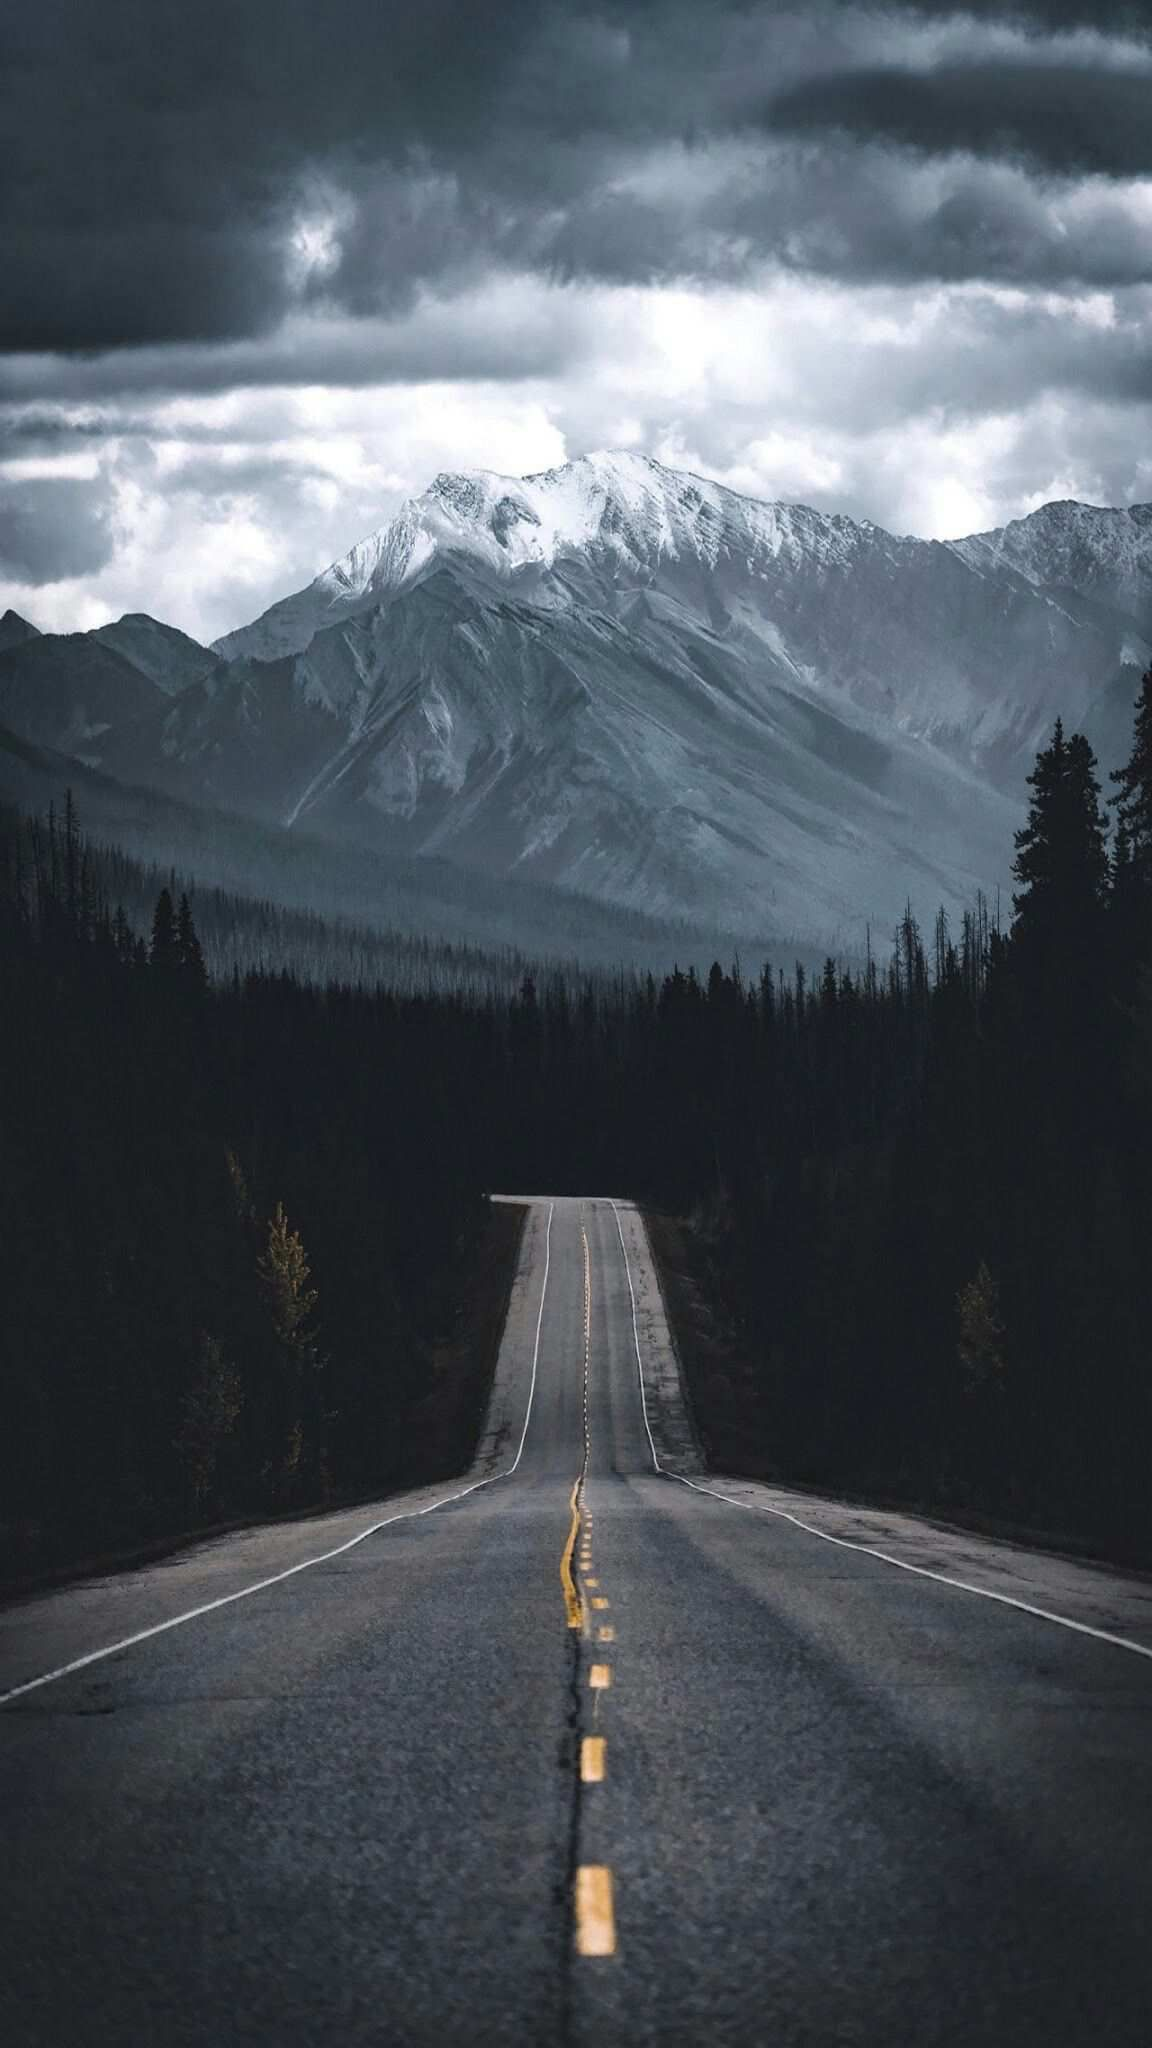 Road To Mountain Nature Iphone Wallpaper Landscape Photography Nature Photography Photography Wallpaper Hd wallpaper mountain road aerial view